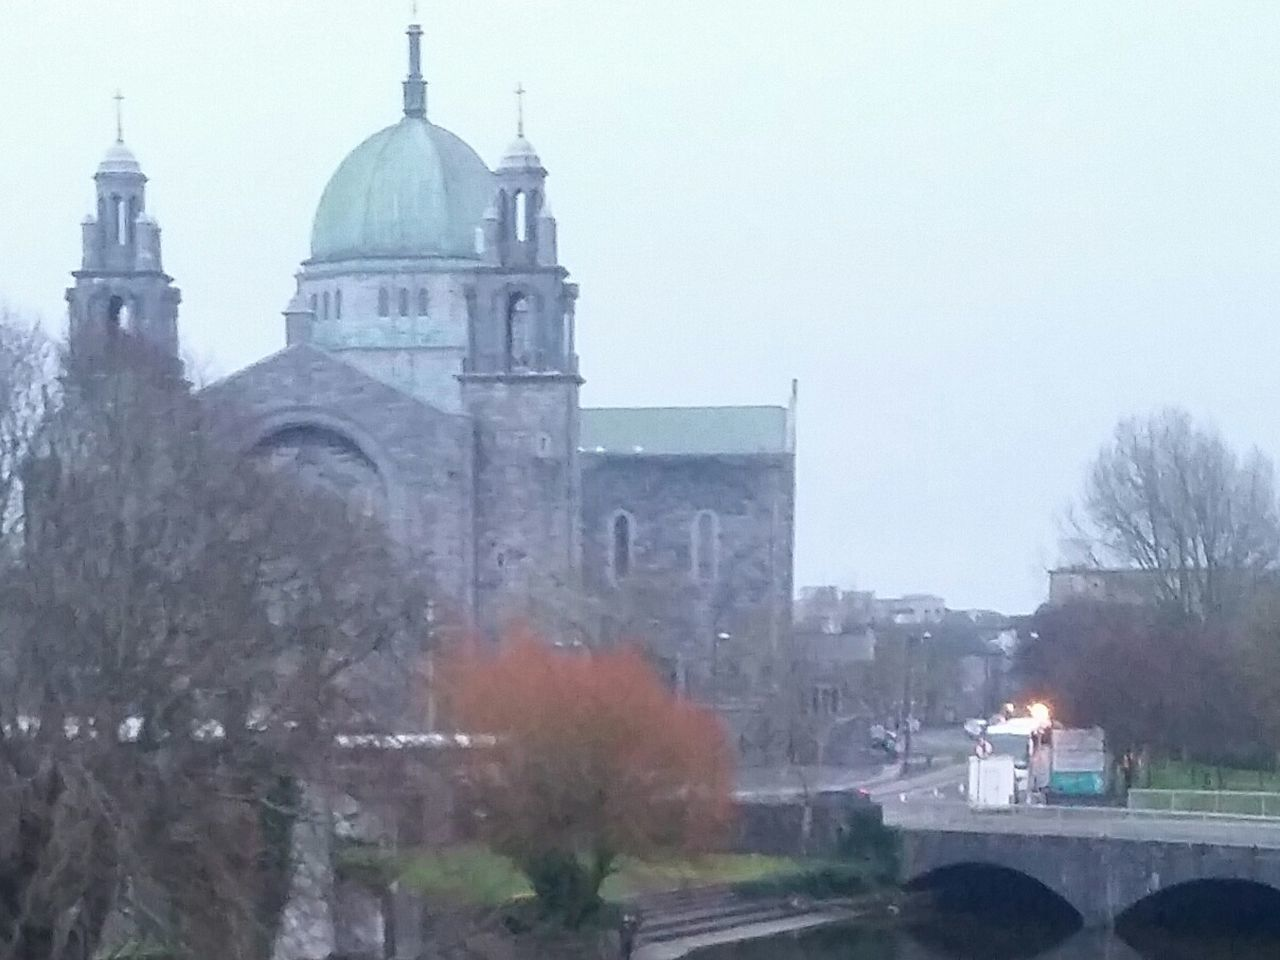 Galway Cathedral in Ireland Samsung Galaxy S5 Samsungphotography Bridge - Man Made Structure Galway City Galway,ireland Sky Samsung Building Exterior Architecture Travel Destinations The City Light Galway Cathedral Ireland Galway Clouds And Sky Freelance Life Taking Photos